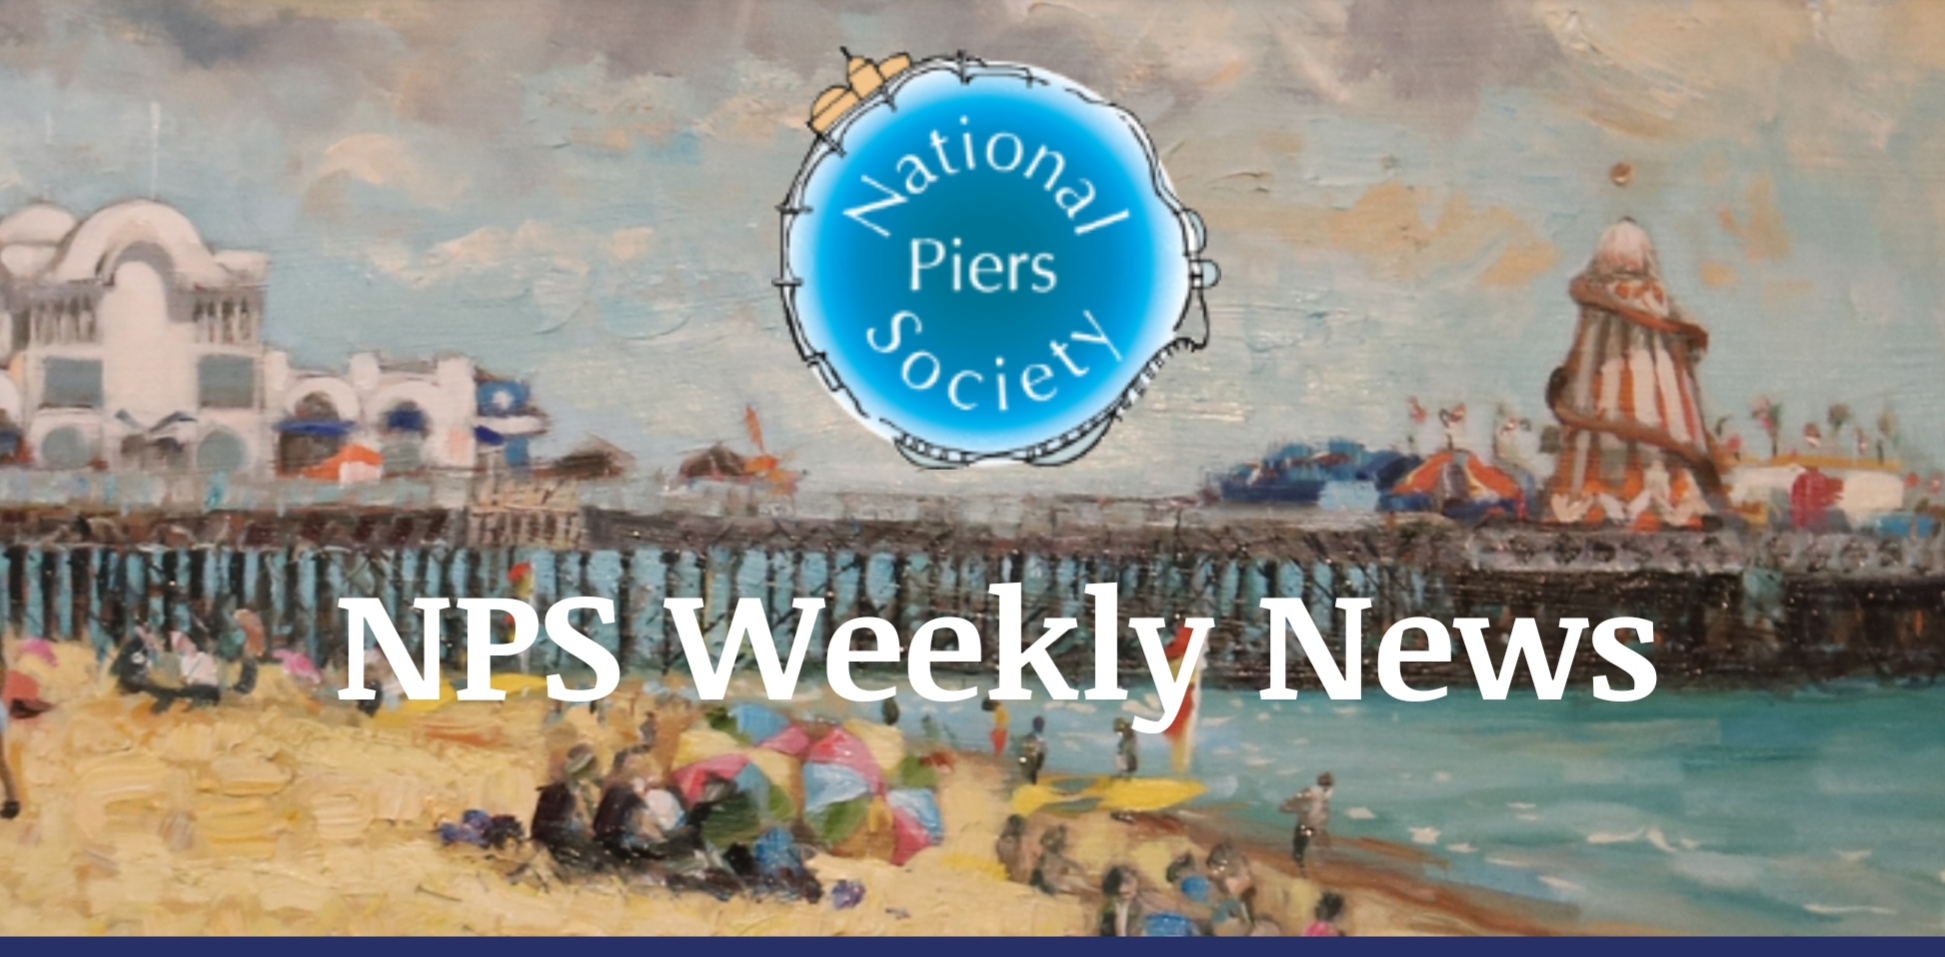 The National Piers Association have kindly used my latest painting of South Parade Pier for the front cover of their weekly News Letter.